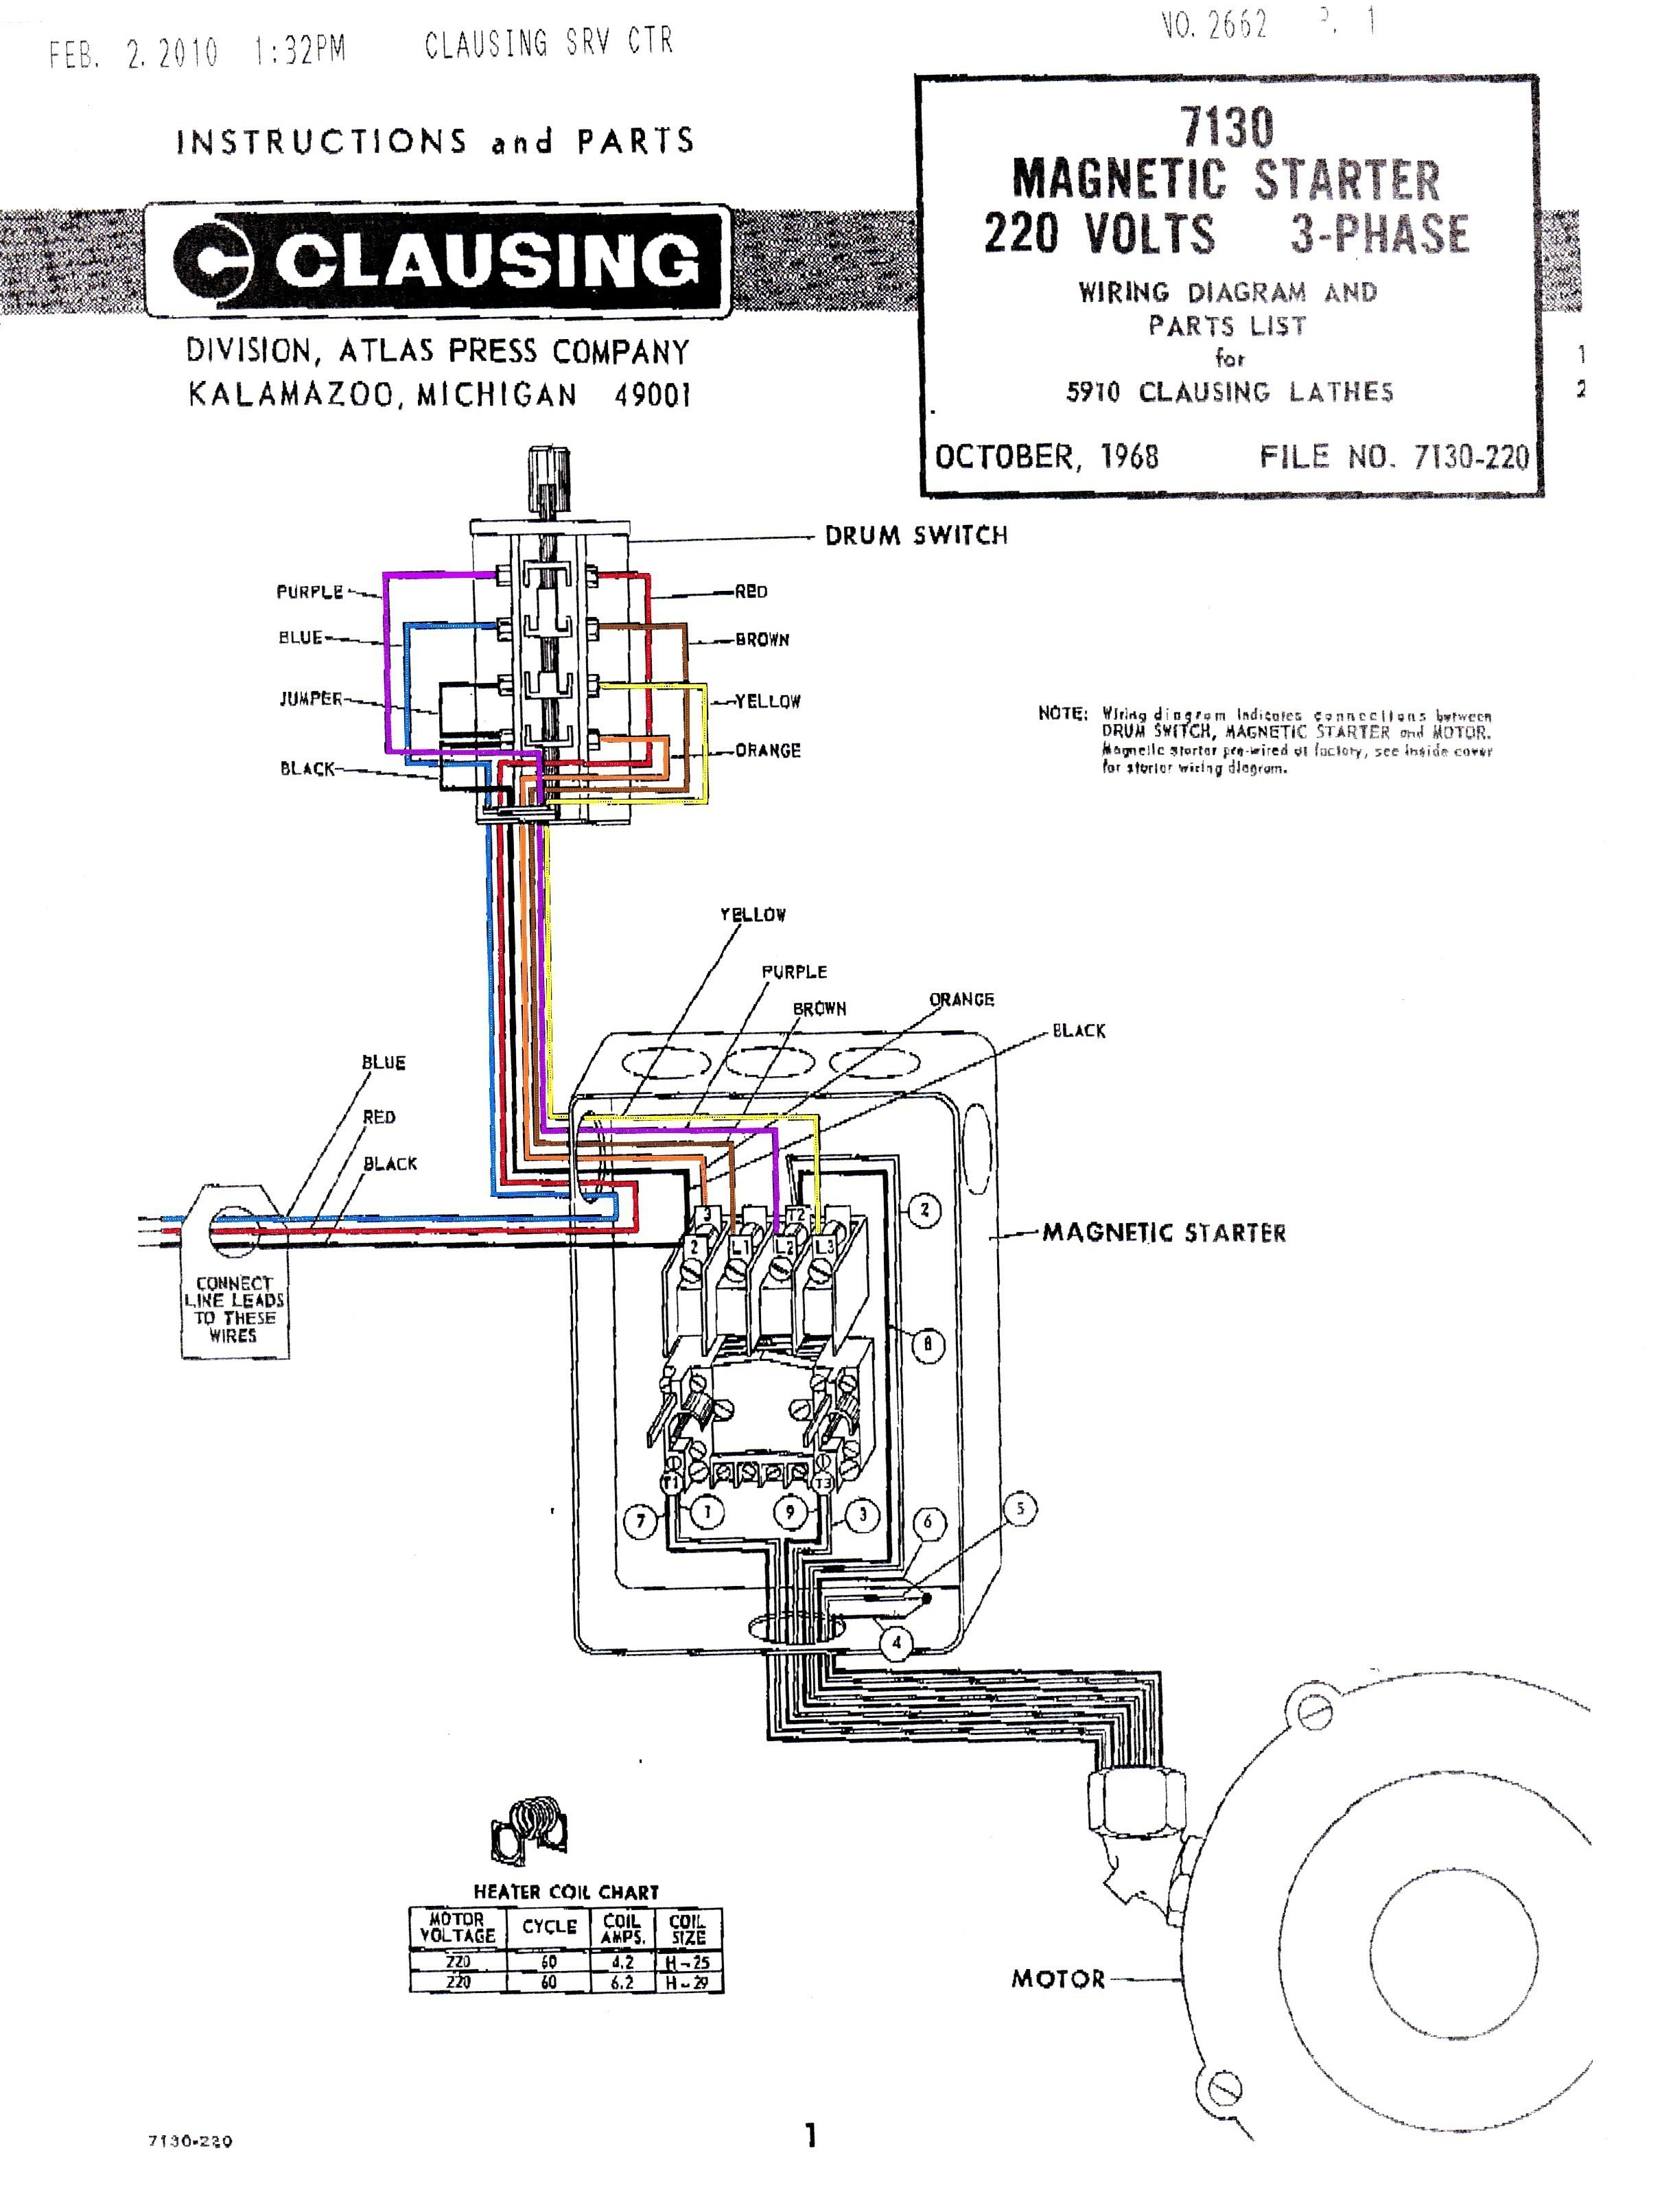 siemens soft starter wiring diagram john deere parts sample